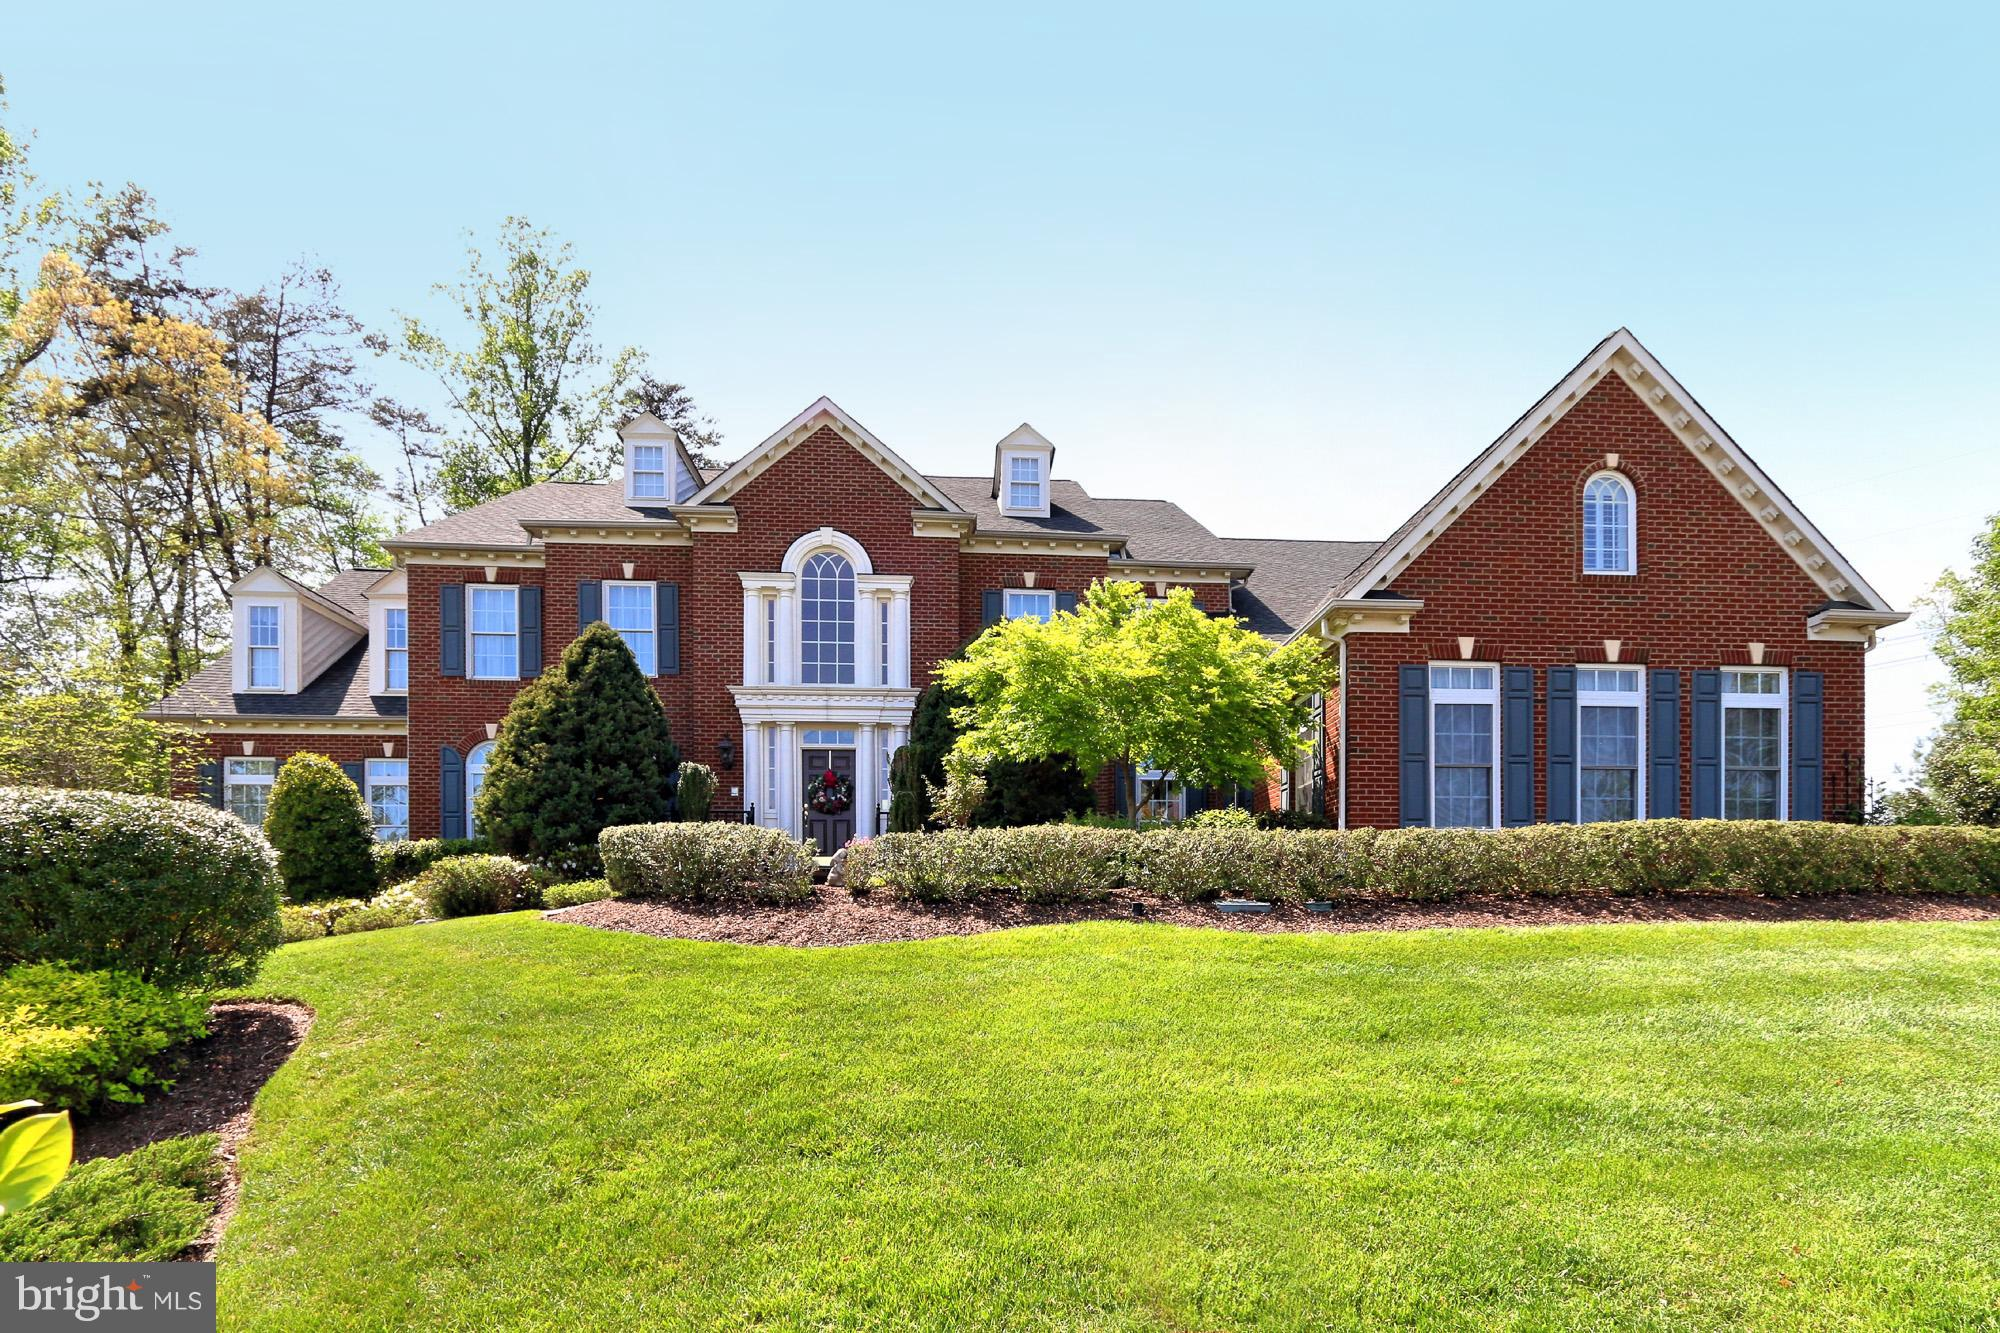 SPECTACULAR! NV Homes Monticello model on 1.32 acres. 2 story foyer w/dual staircase. Gourmet Kitchen w/Viking Professional Series. Morning Rm. 2 story Family Rm w/custom cabinetry. Gracious size formal Dining Rm. UL-Master Suite w/designer shower. LL- Au-Pair Suite, Rec Rm,Theatre. Exterior -3-sided brick. 3 car garage.Tranquil private backyard fully fenced. 6.5 miles to I95.ONE OF A KIND!! 10+++